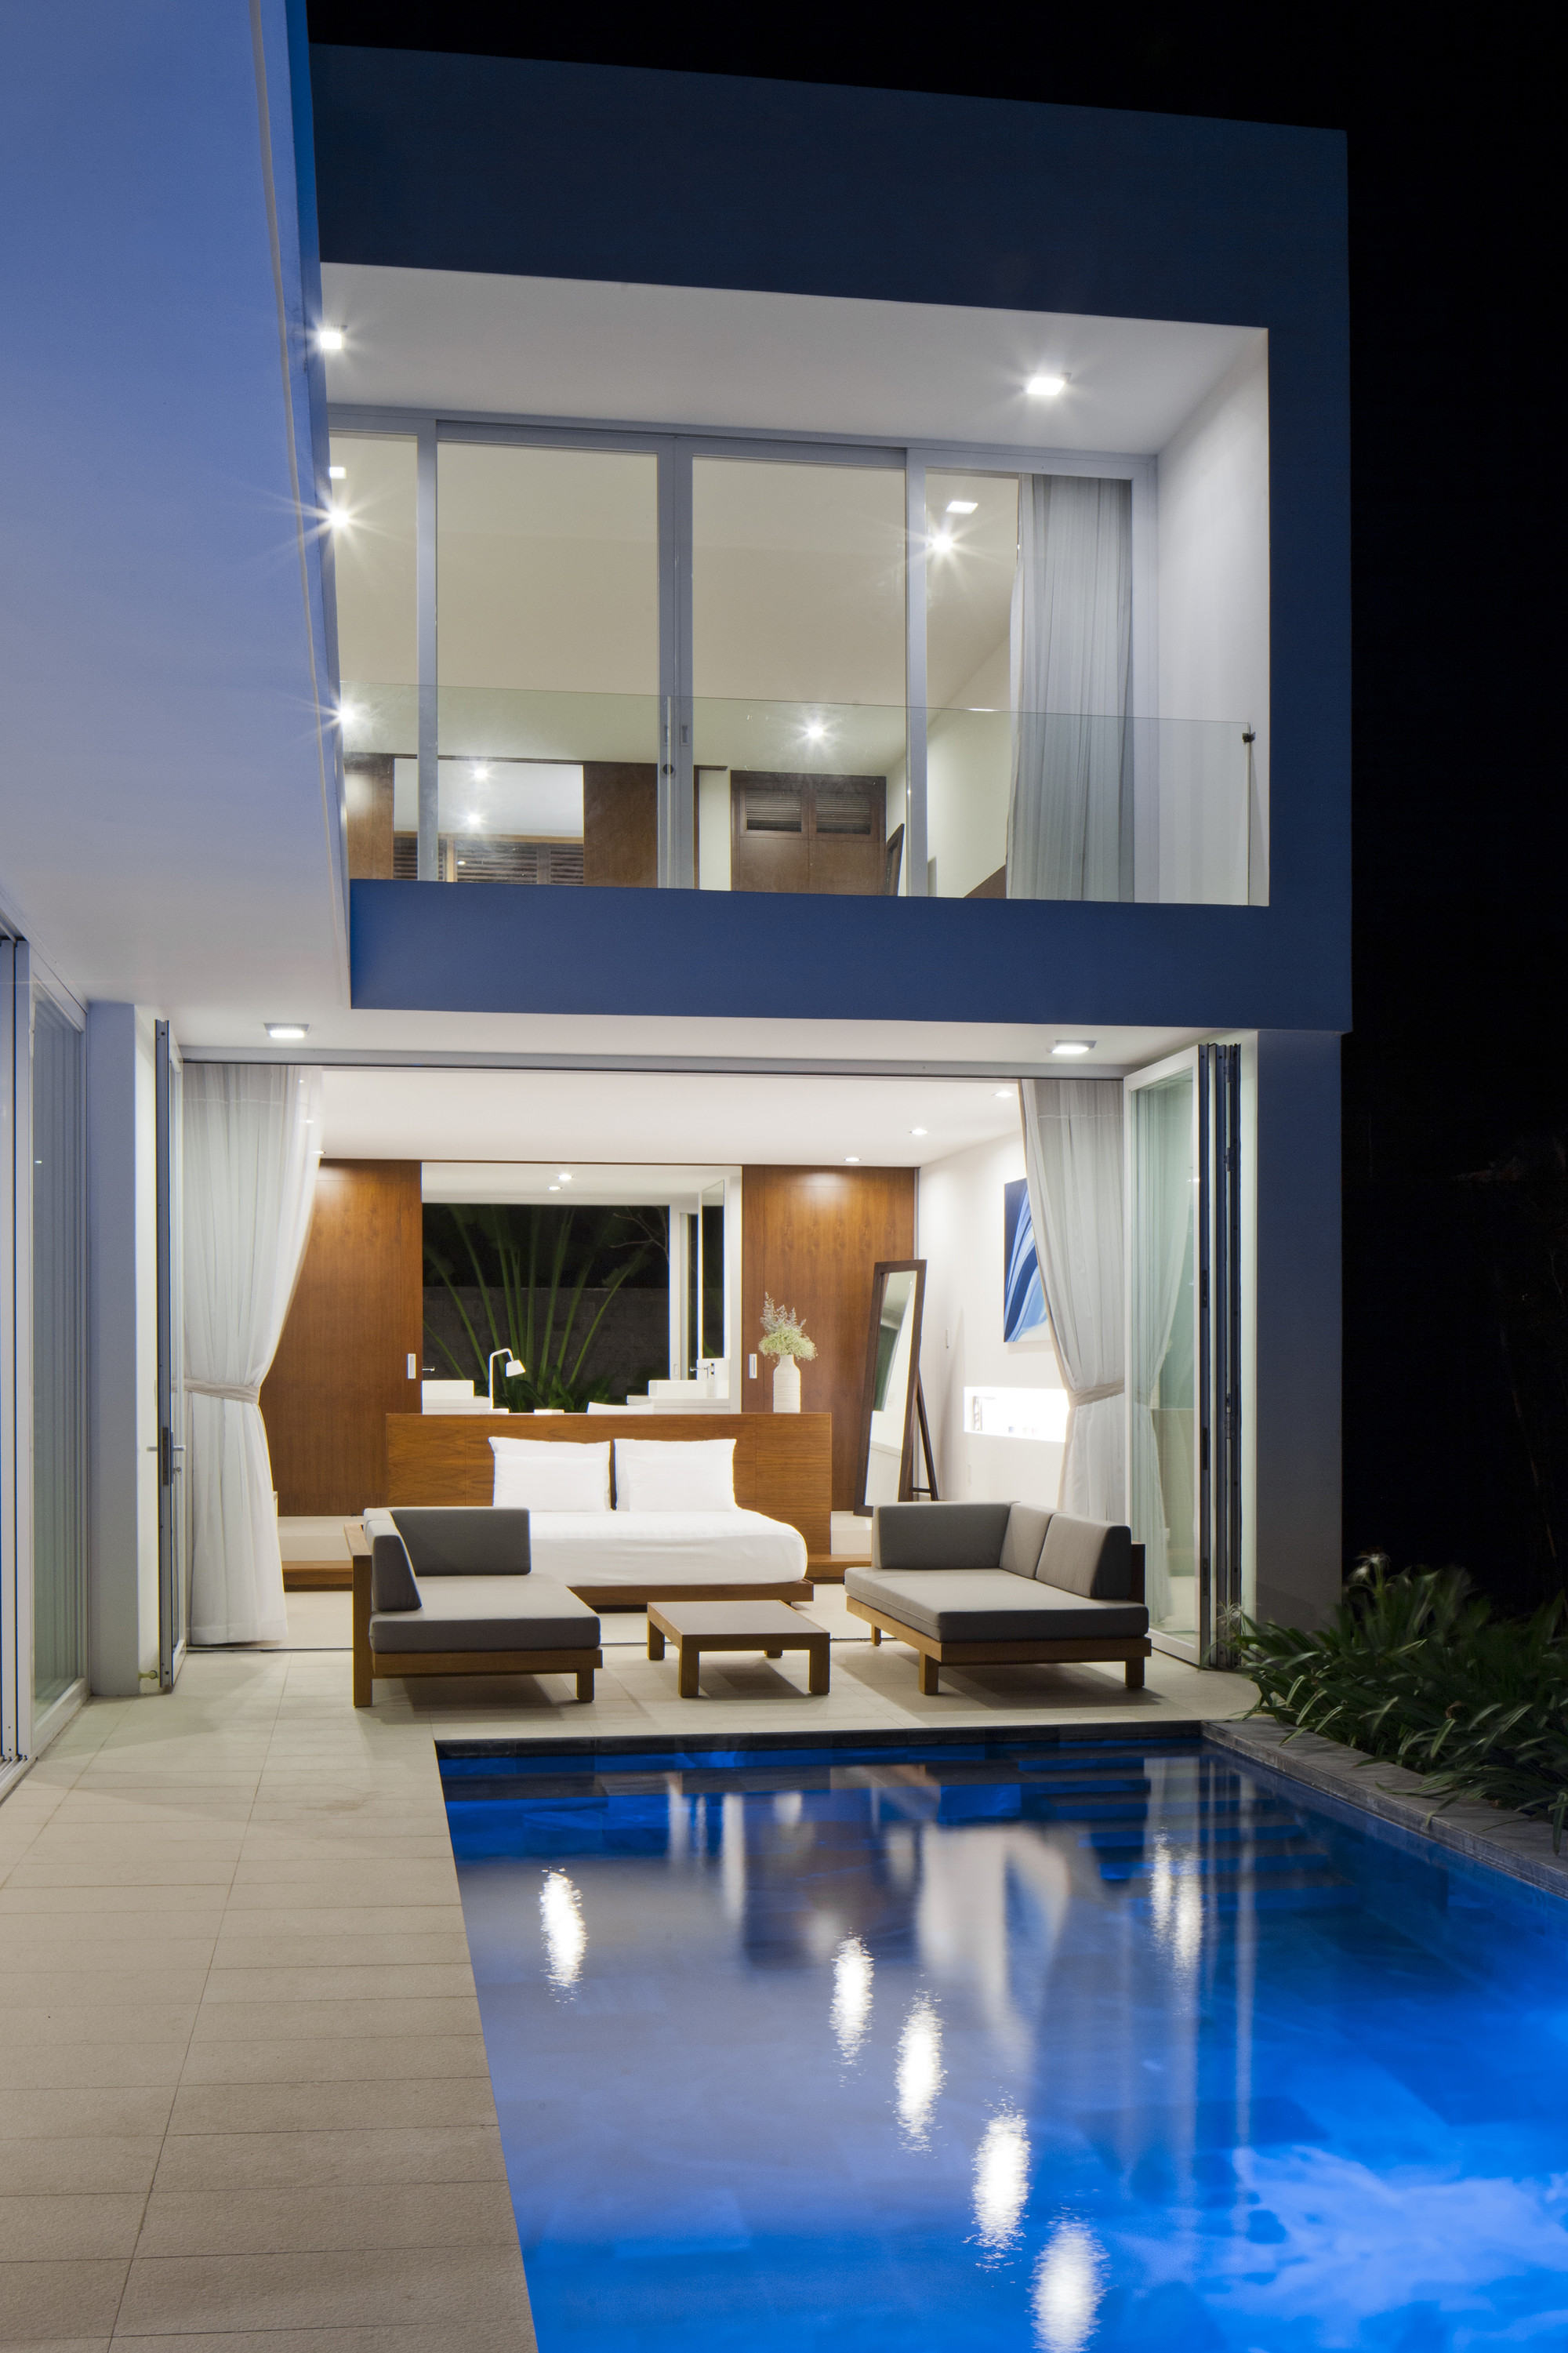 Gallery of Oceanique Villas / MM++ architects - 13